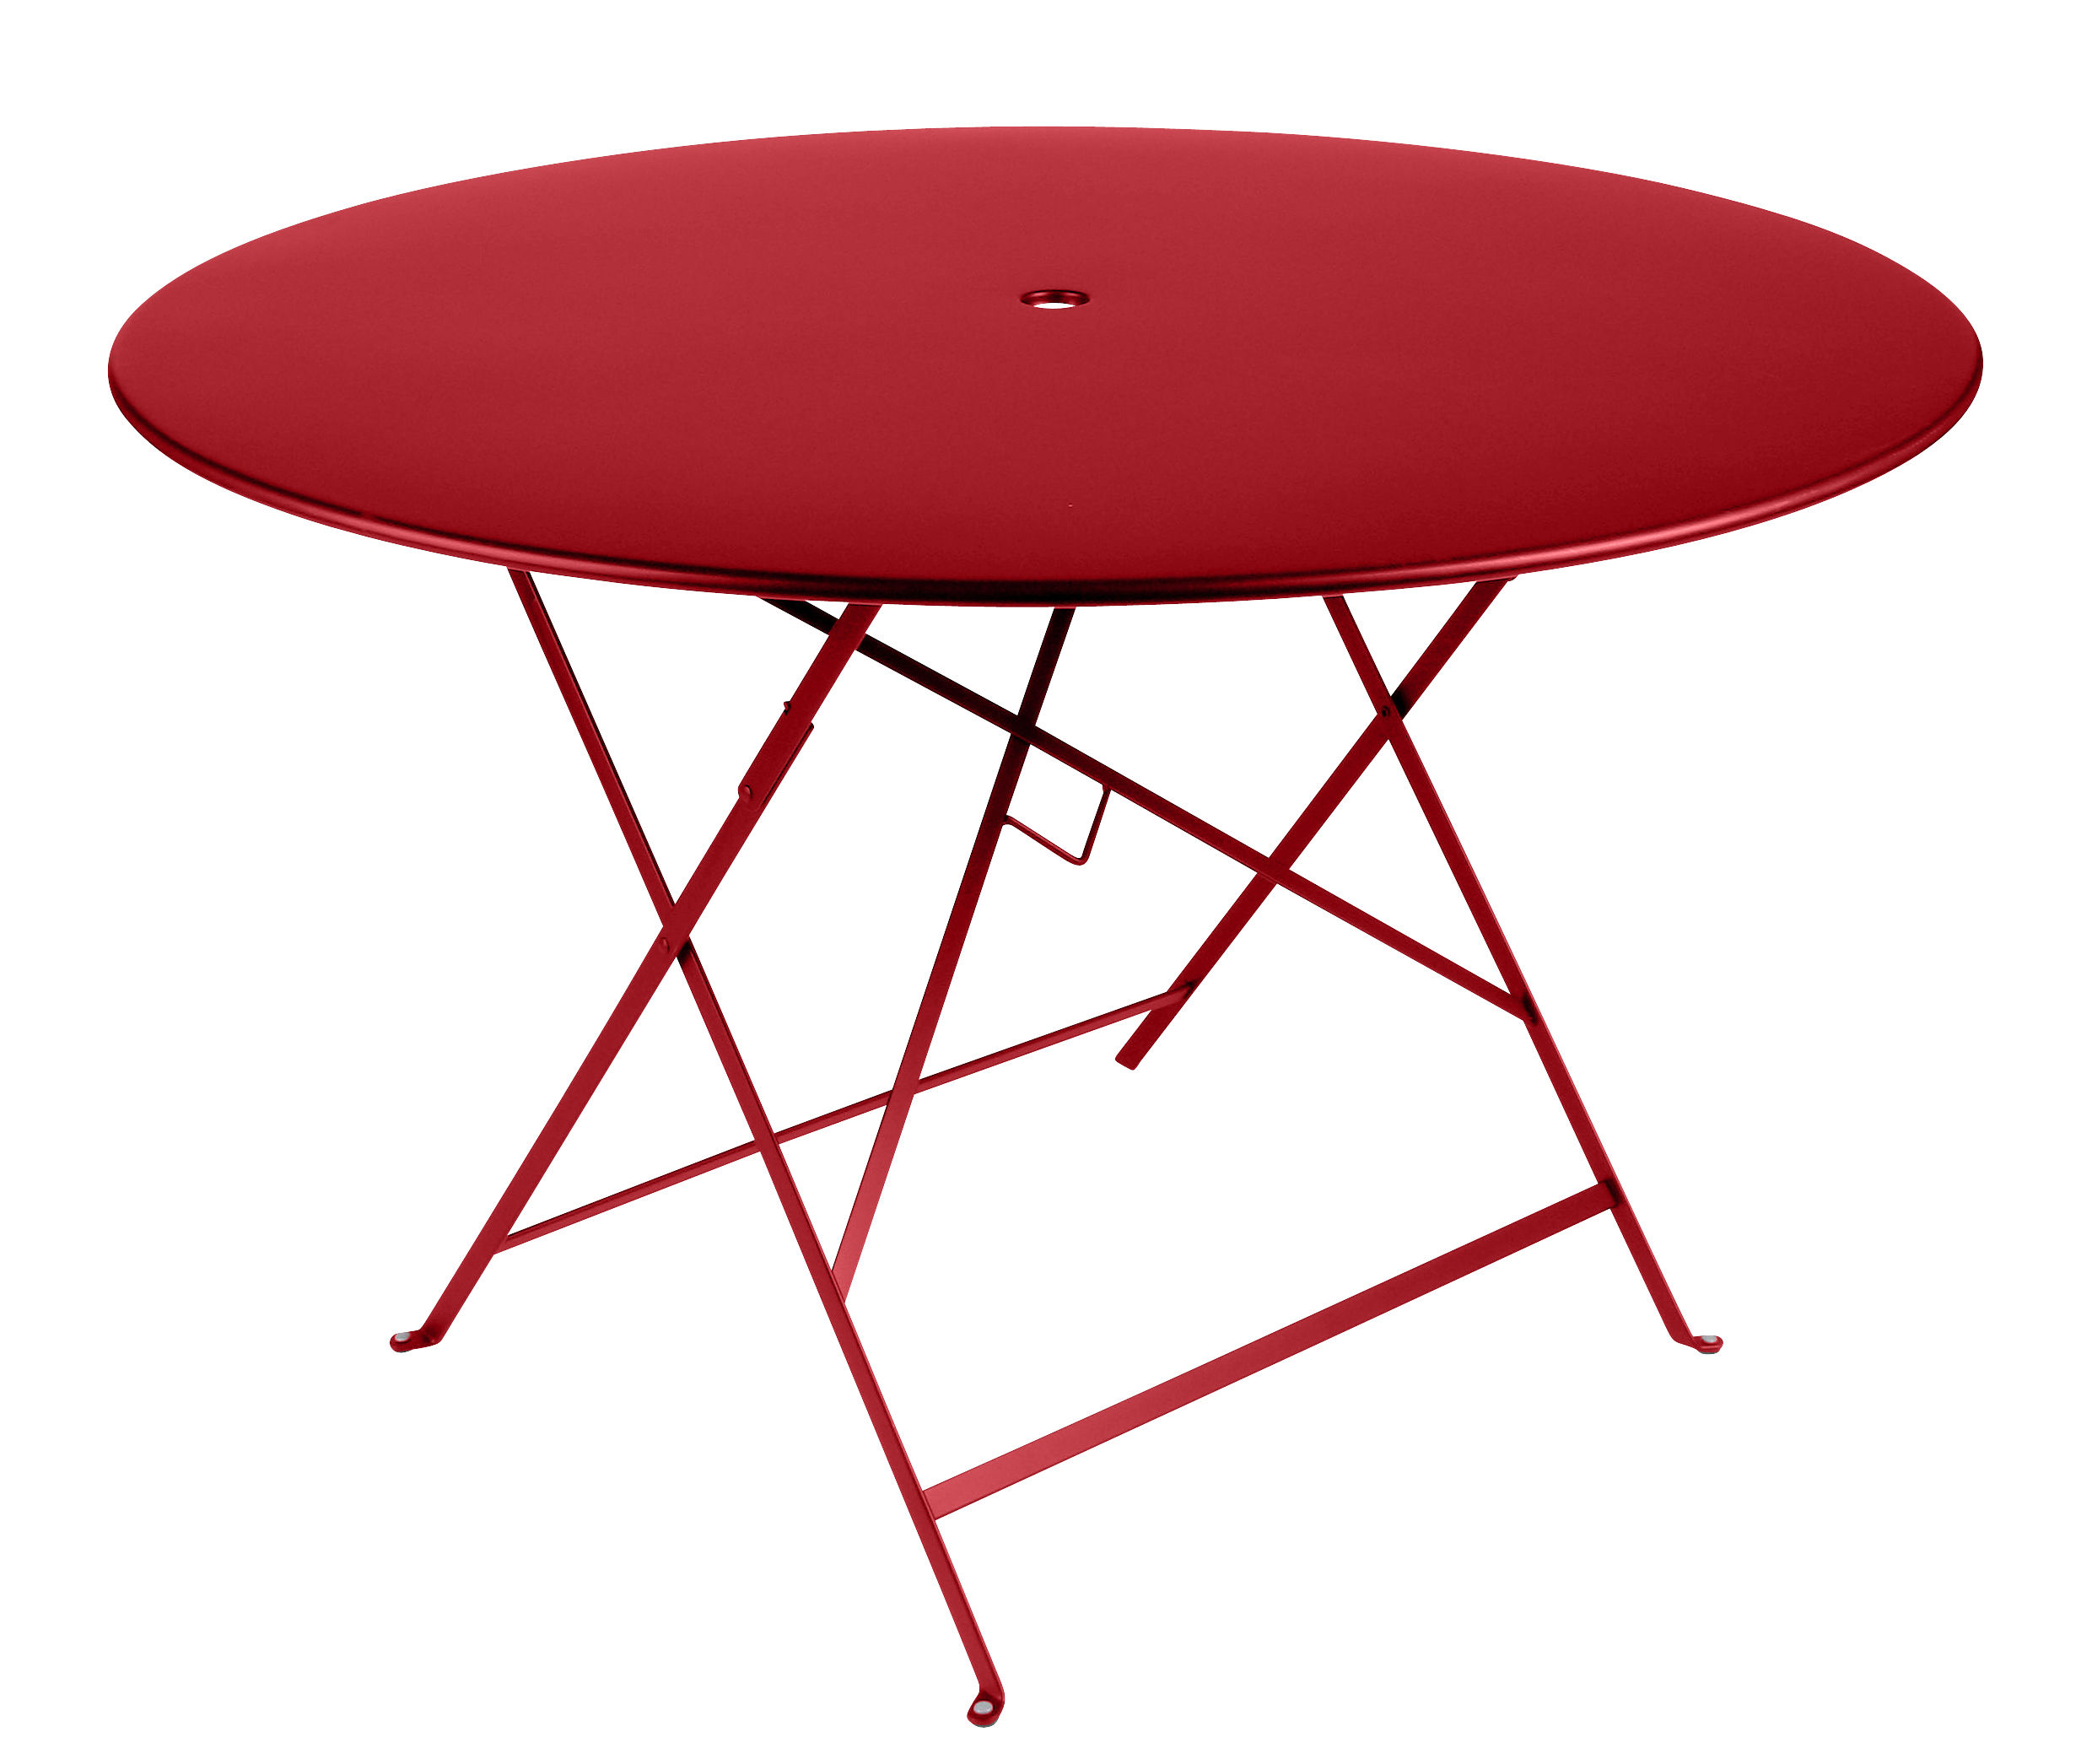 bistro foldable table 117 cm 6 8 people umbrella hole poppy by fermob. Black Bedroom Furniture Sets. Home Design Ideas